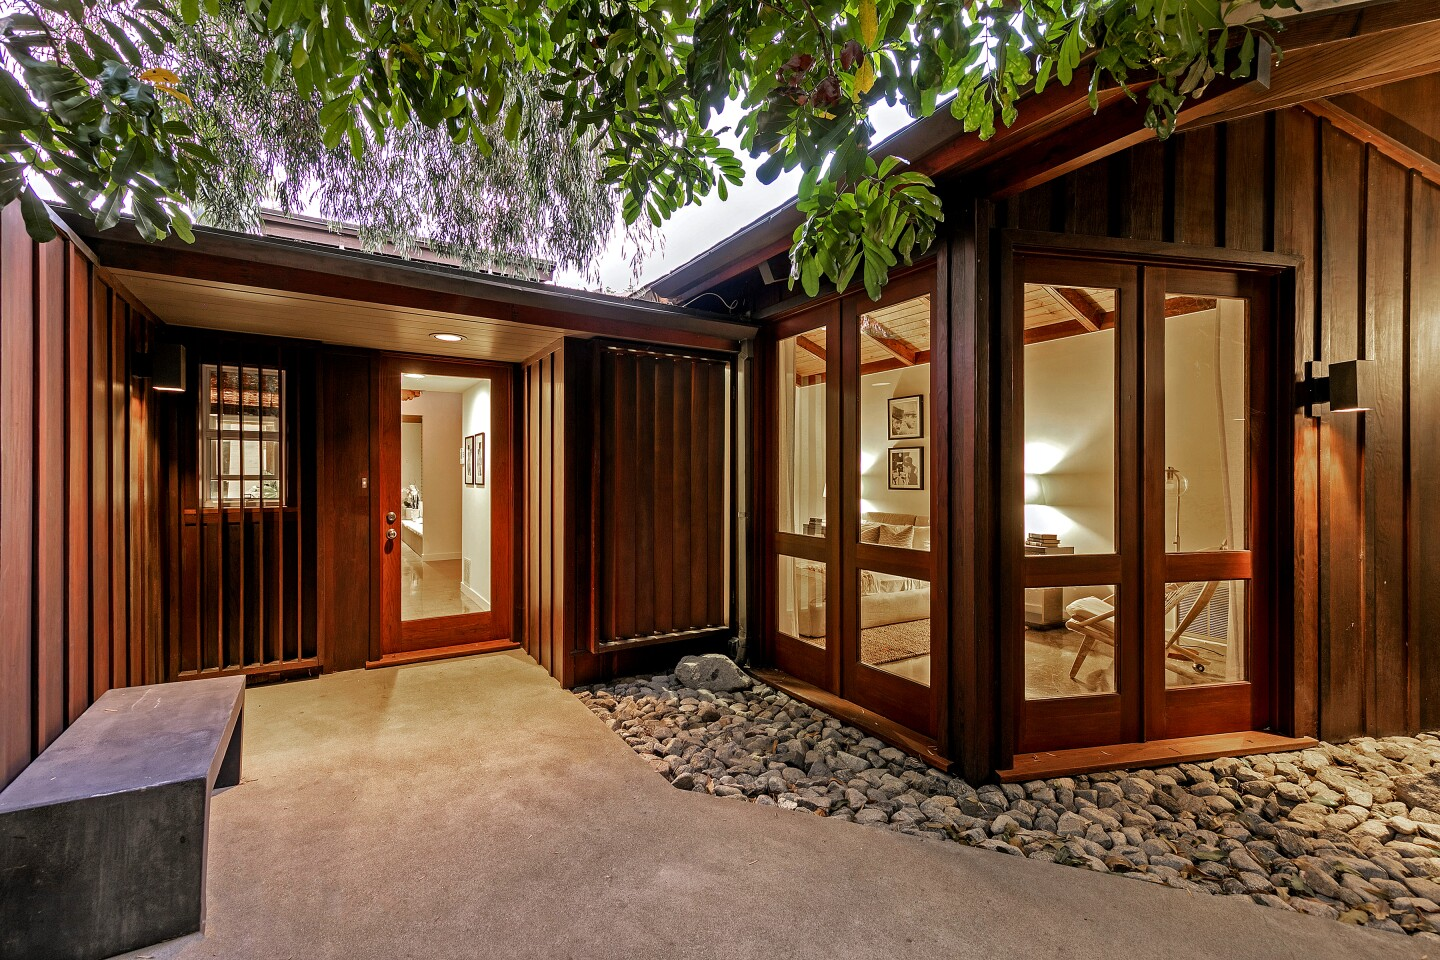 Actor Josh Hutcherson has complete a scene change in the Hollywood Hills, selling his of eight years for $2.94 million. The wood-clad Midcentury home, built in 1951, features walls of glass, an updated kitchen and expansive decking that creates additional living space outdoors. Late actor Heather Ledger is among previous owners of the 1,900-square-foot house, which has two bedrooms and two bathrooms.